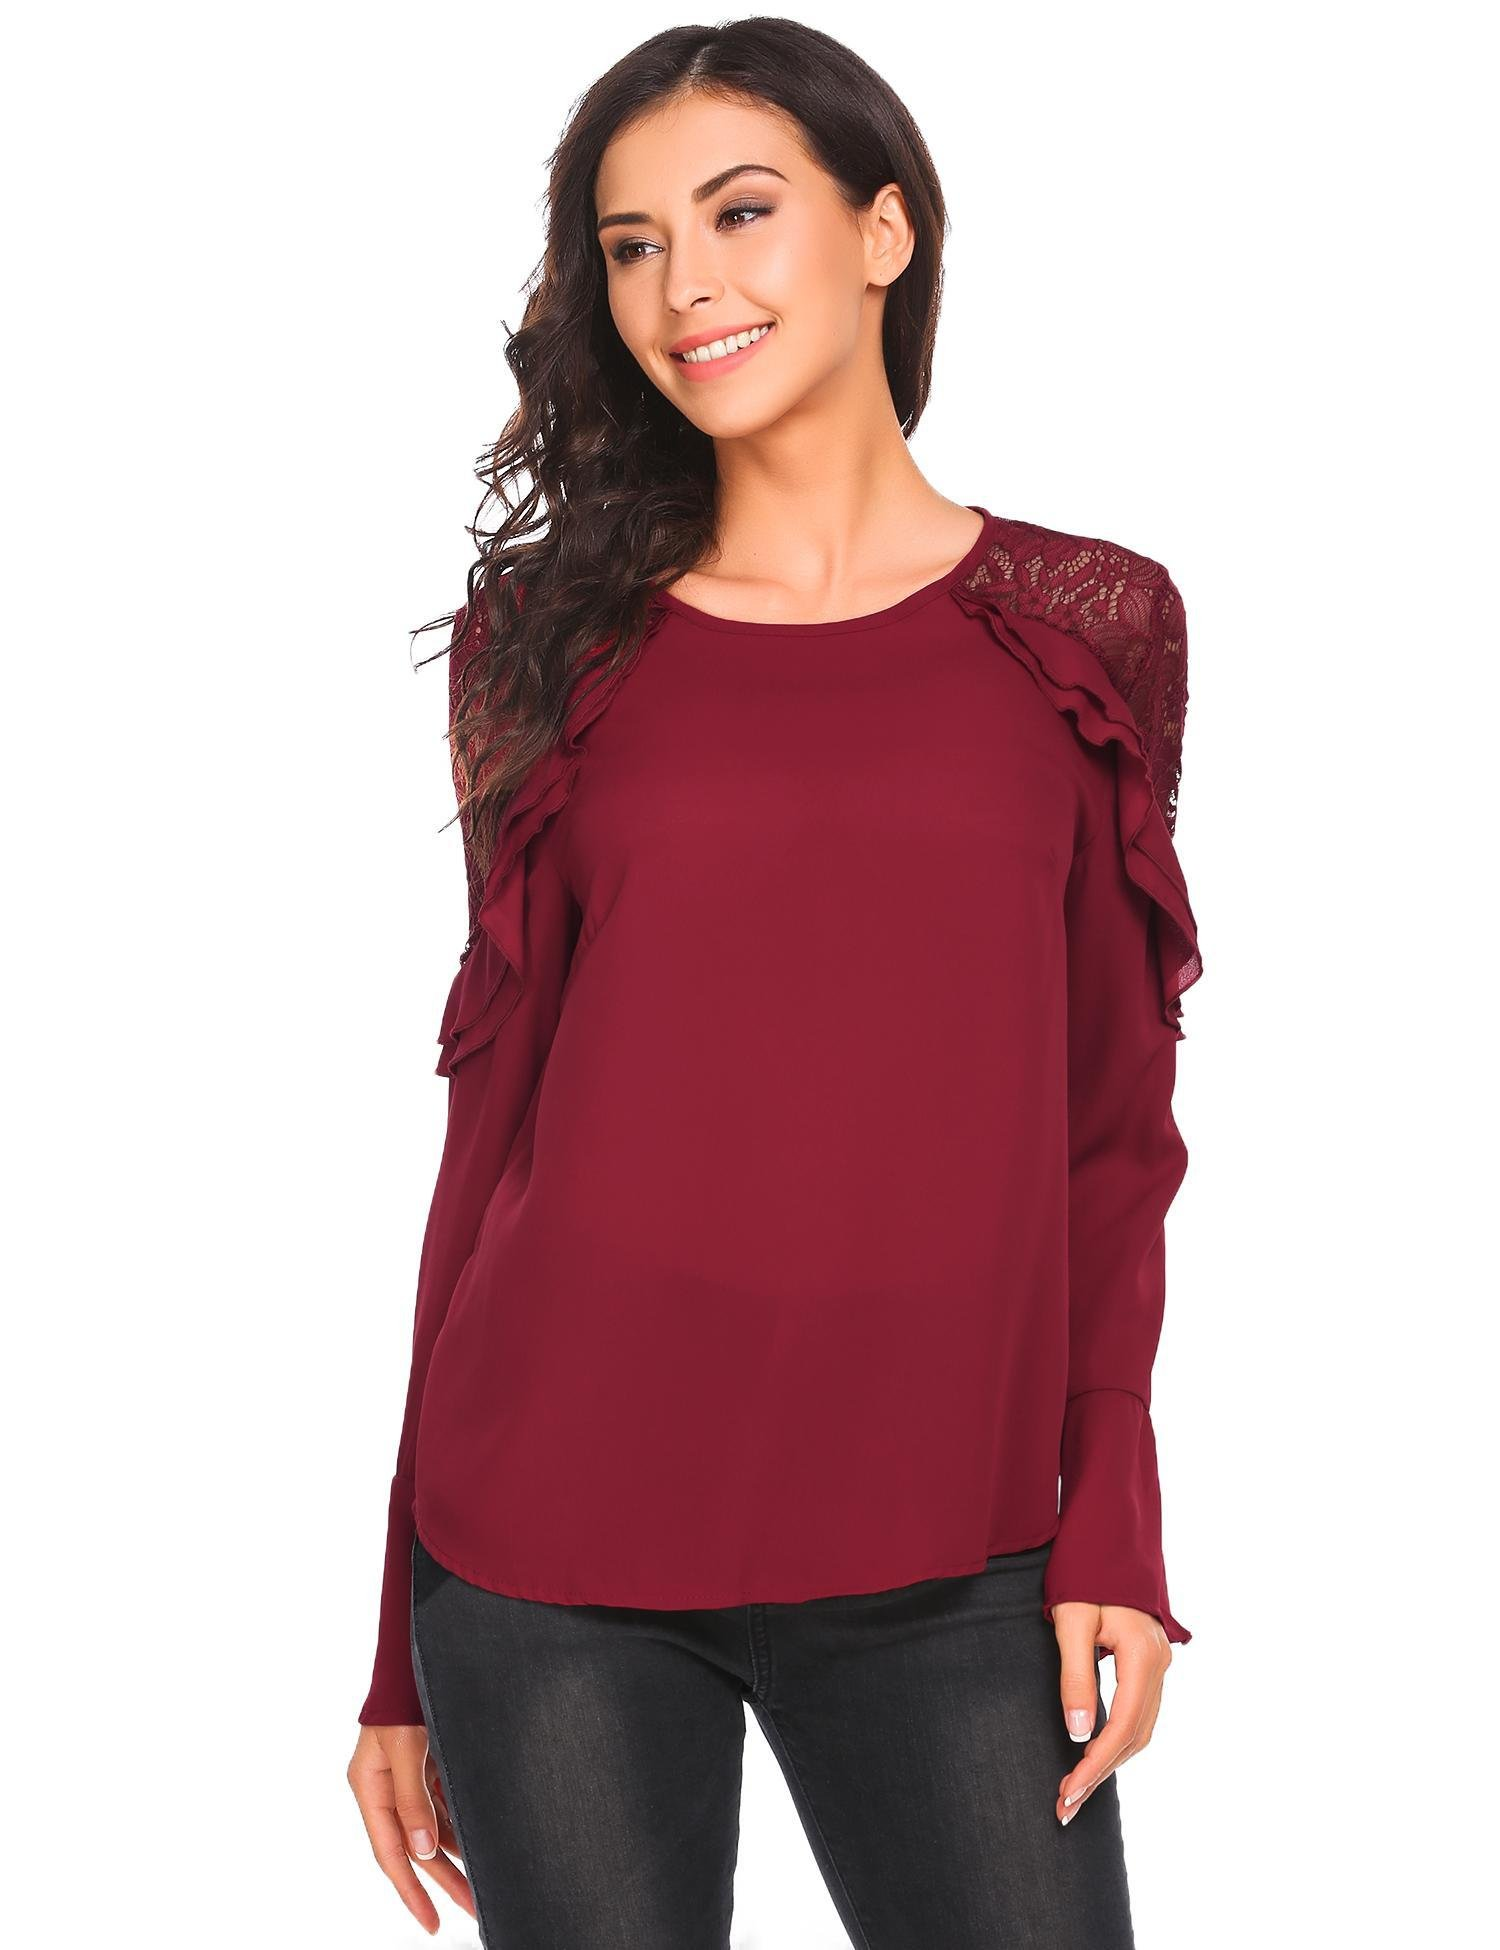 Bulges Ladies Sexy Off Shoulder Flare Sleeve Lace Tops Casual Solid Loose Crochet T-Shirt Blouse Red, Size M